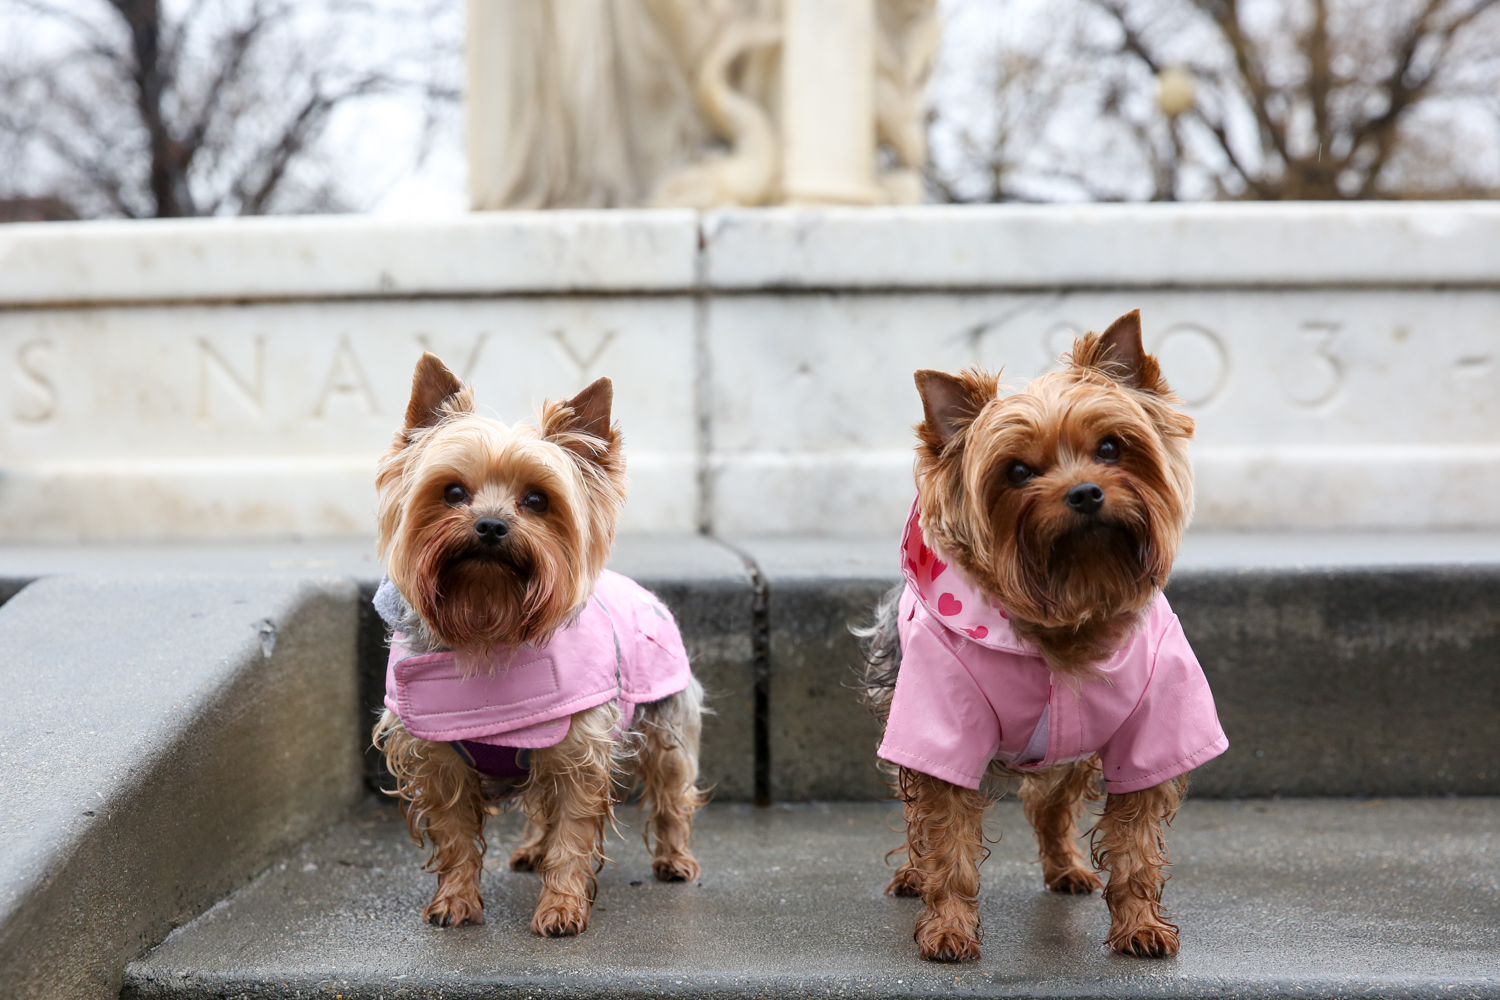 "Meet Sophia and Izzy Bear, 5-year-old and 3-year-old Yorkshire Terrier sisters.  Sophia and Izzy's mom has grown up around Yorkies since she was 11, and she found both of her beautiful girls when she lived in Florida. They have adjusted well to city life, and really love being able to walk into so many of the stores and shops around D.C. -- the extra attention makes them showoff! Mom likes to jokingly refer to the girls as her ""therapist, Prozac, adventure seeing buddies and best friends all wrapped into one!"" After creating an Instagram account for Sophia and Izzy Bear (@yorkieheaven), mom realized there was a huge need for products uniquely suited to meet the needs of small dogs, and thus @smalldogofficial was born, with Sophia and Izzy Bear taking over as co-CEOs. Currently they market a comb to remove ""eye gunk"" on little dogs. If you or someone you know has a pet you'd like featured, email us at dcrefined@gmail.com or tag #DCRUFFined and your furbaby could be the next spotlighted! (Image: Amanda Andrade-Rhoades/ DC Refined)"